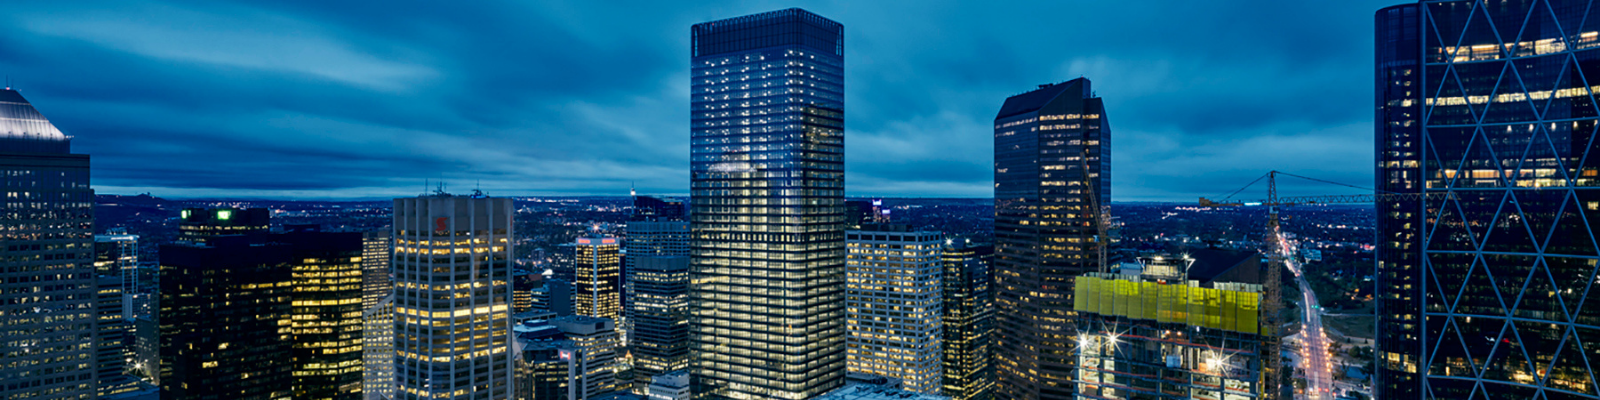 Aerial Image of Brookfield Place Calgary